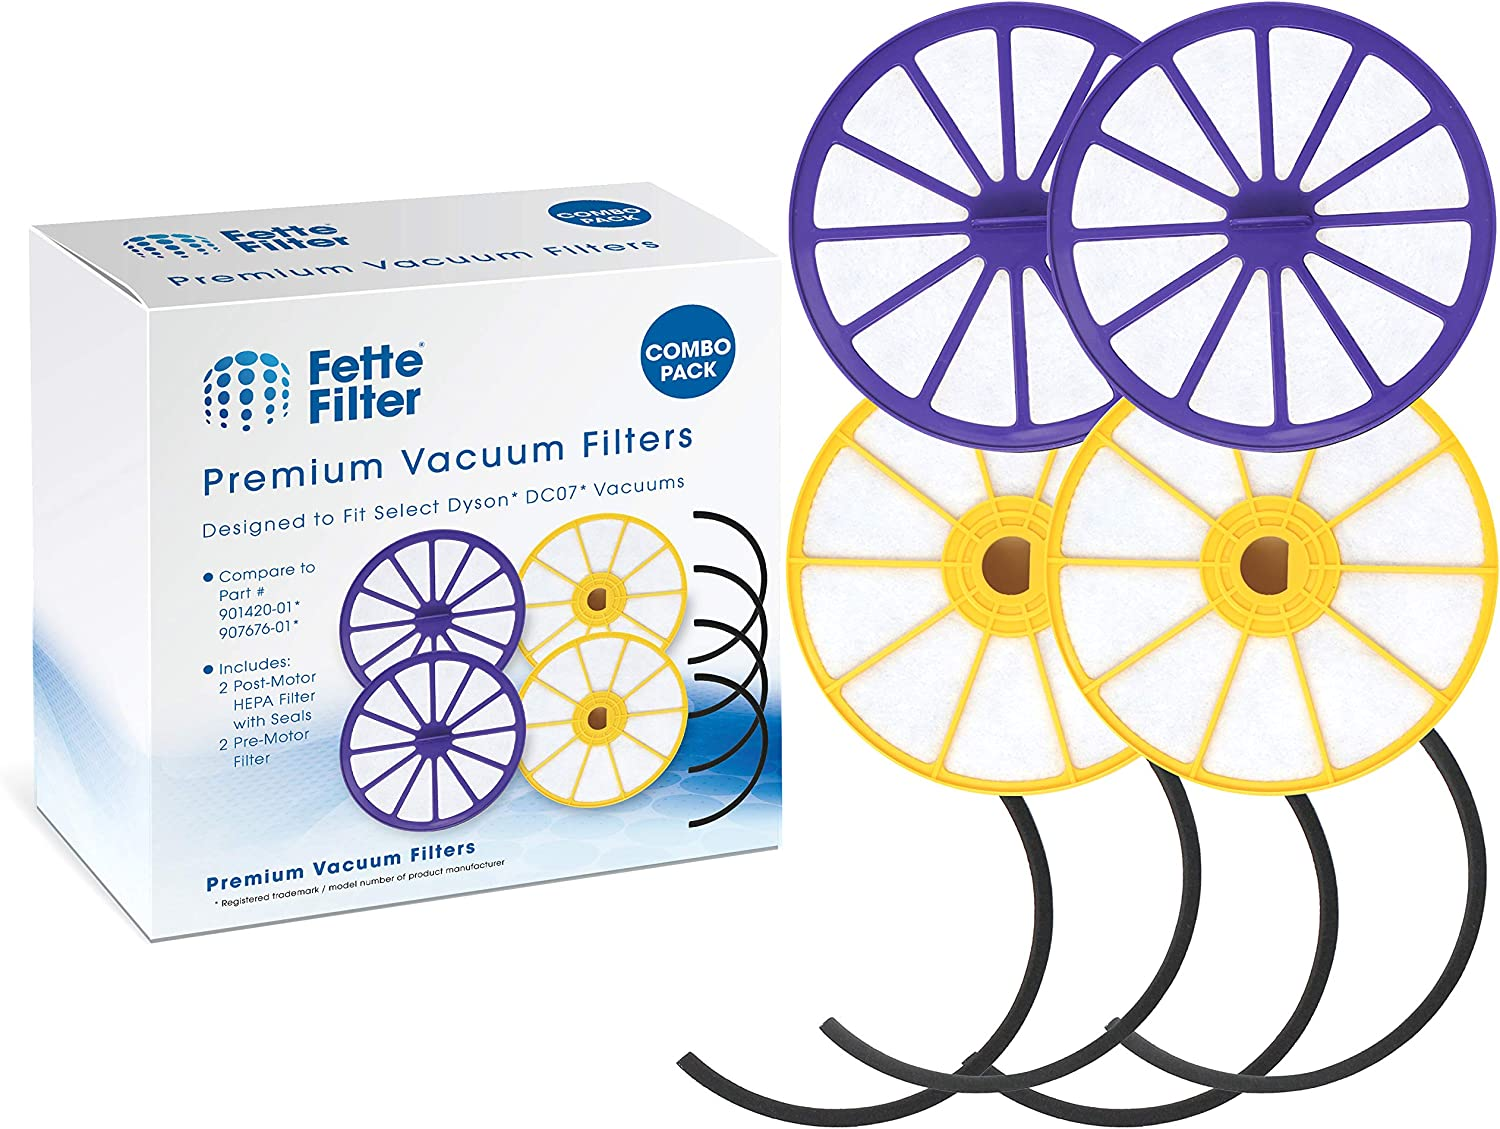 Fette Filter - Pre-Motor Filter & Post-Motor HEPA Filter Compatible with Dyson DC07. Compare to Part # 901420-02 & 904979-02 - Combo Pack (Pack of 2)